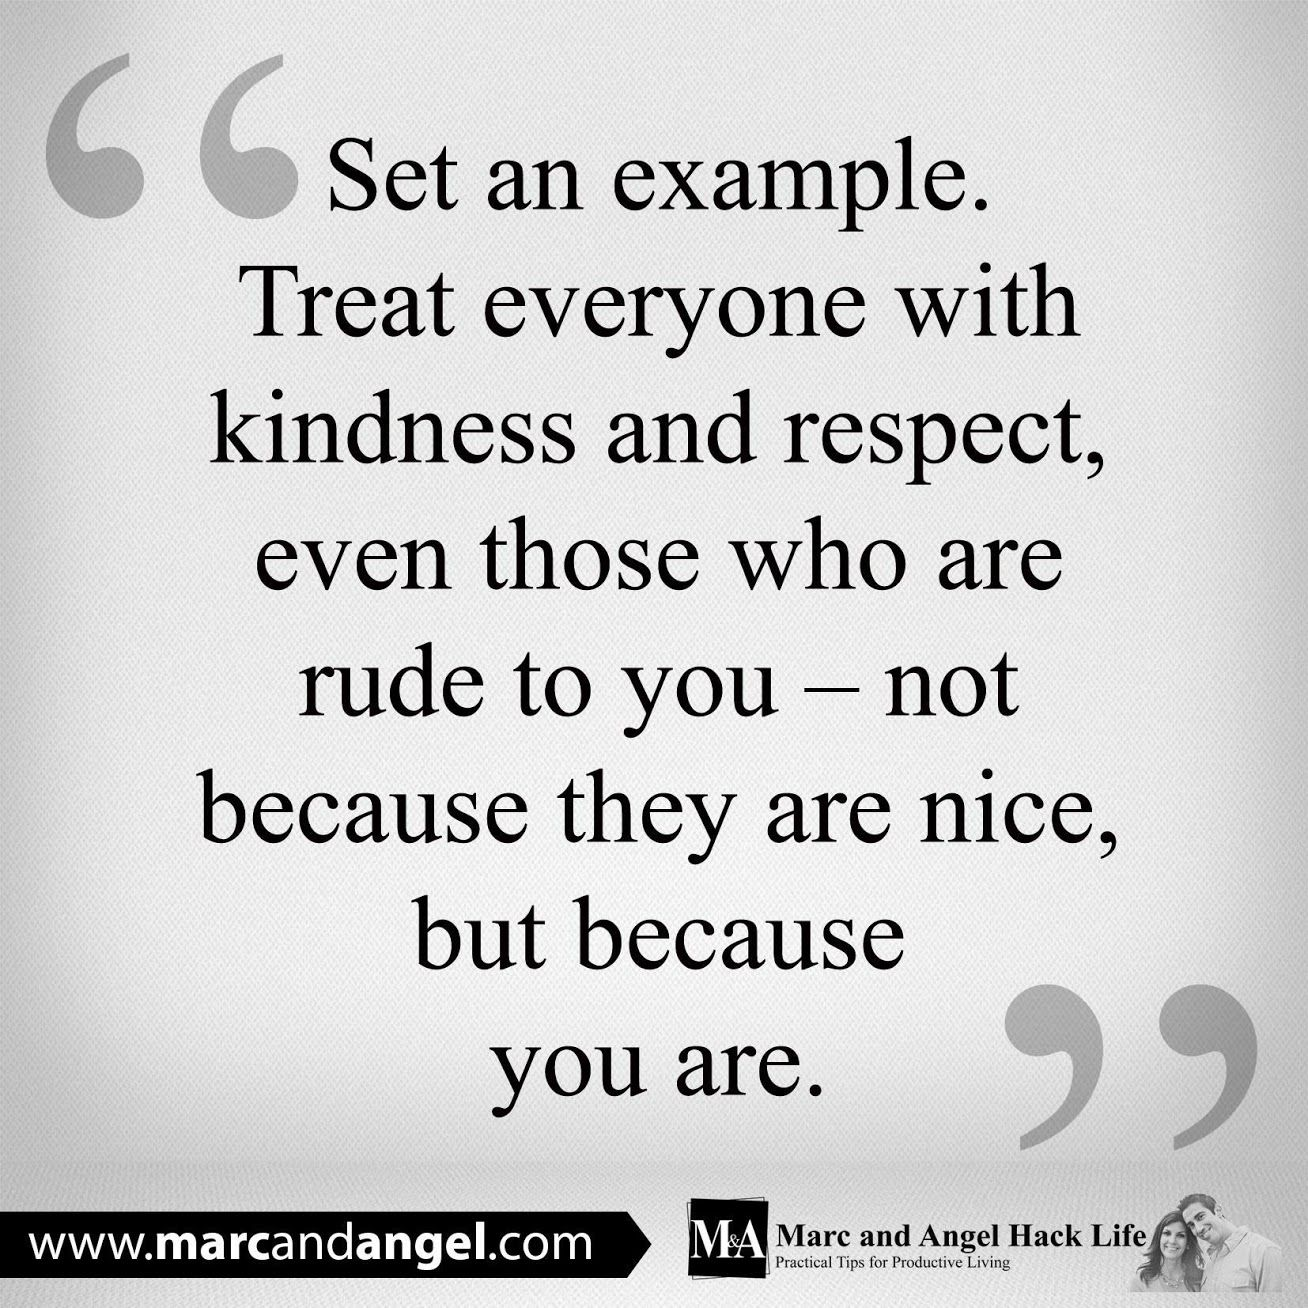 Treat everyone with kindness and respect, even those who are rude